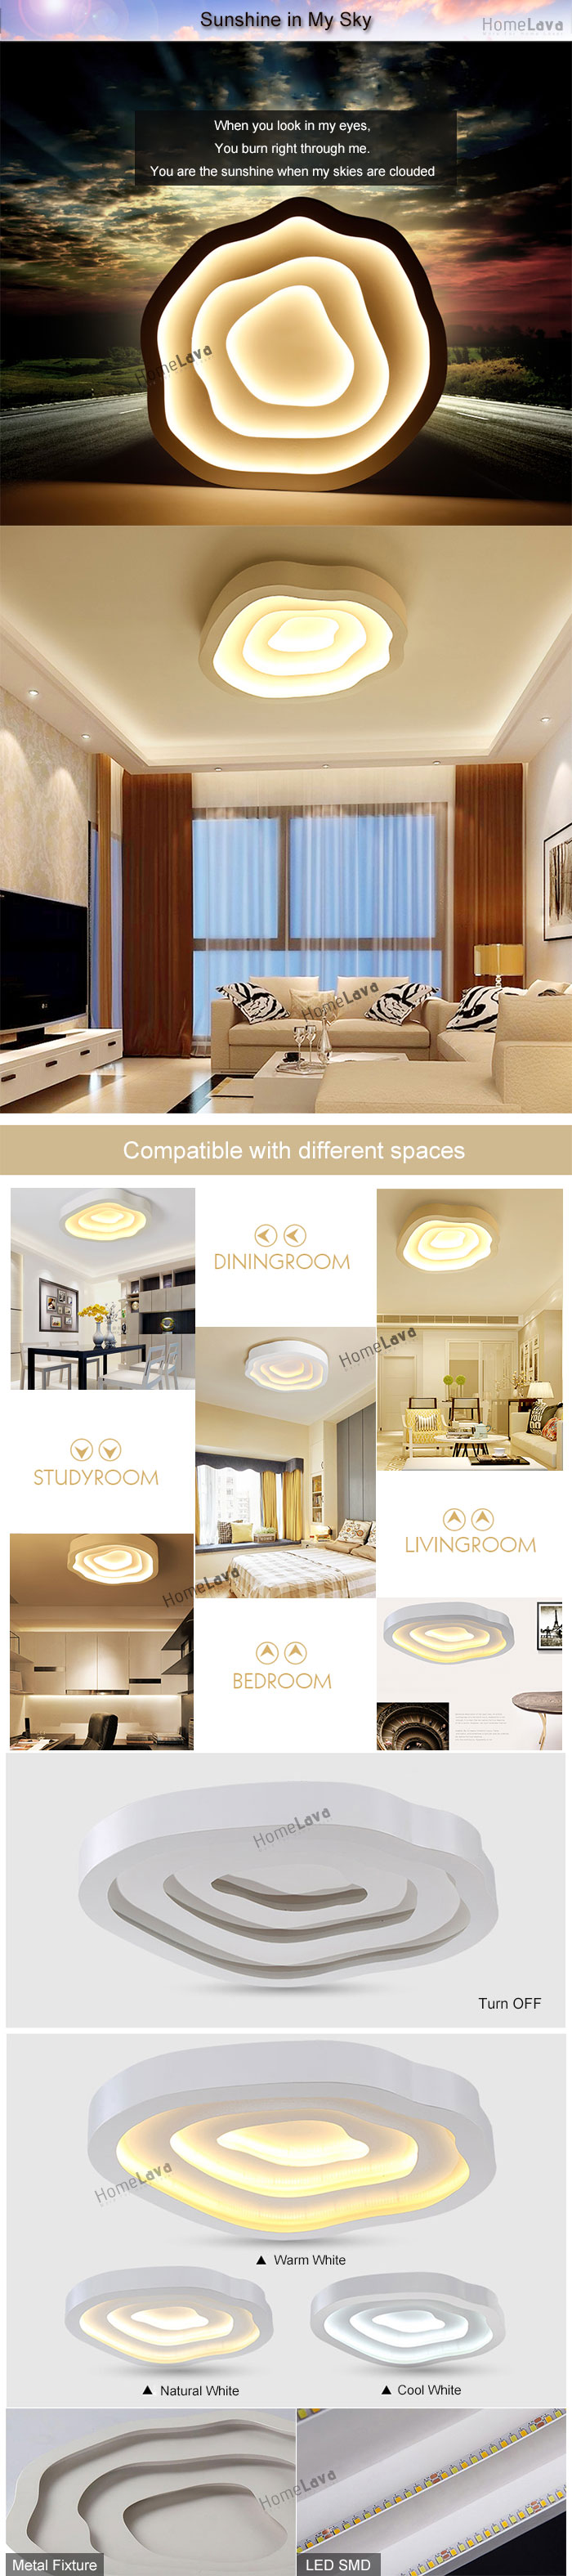 (In Stock) Modern Simple Fashion LED Metal White Flush Mount Light Living Room Bedroom Study Room Dining Room Energy Saving(Sunshine In My Sky)